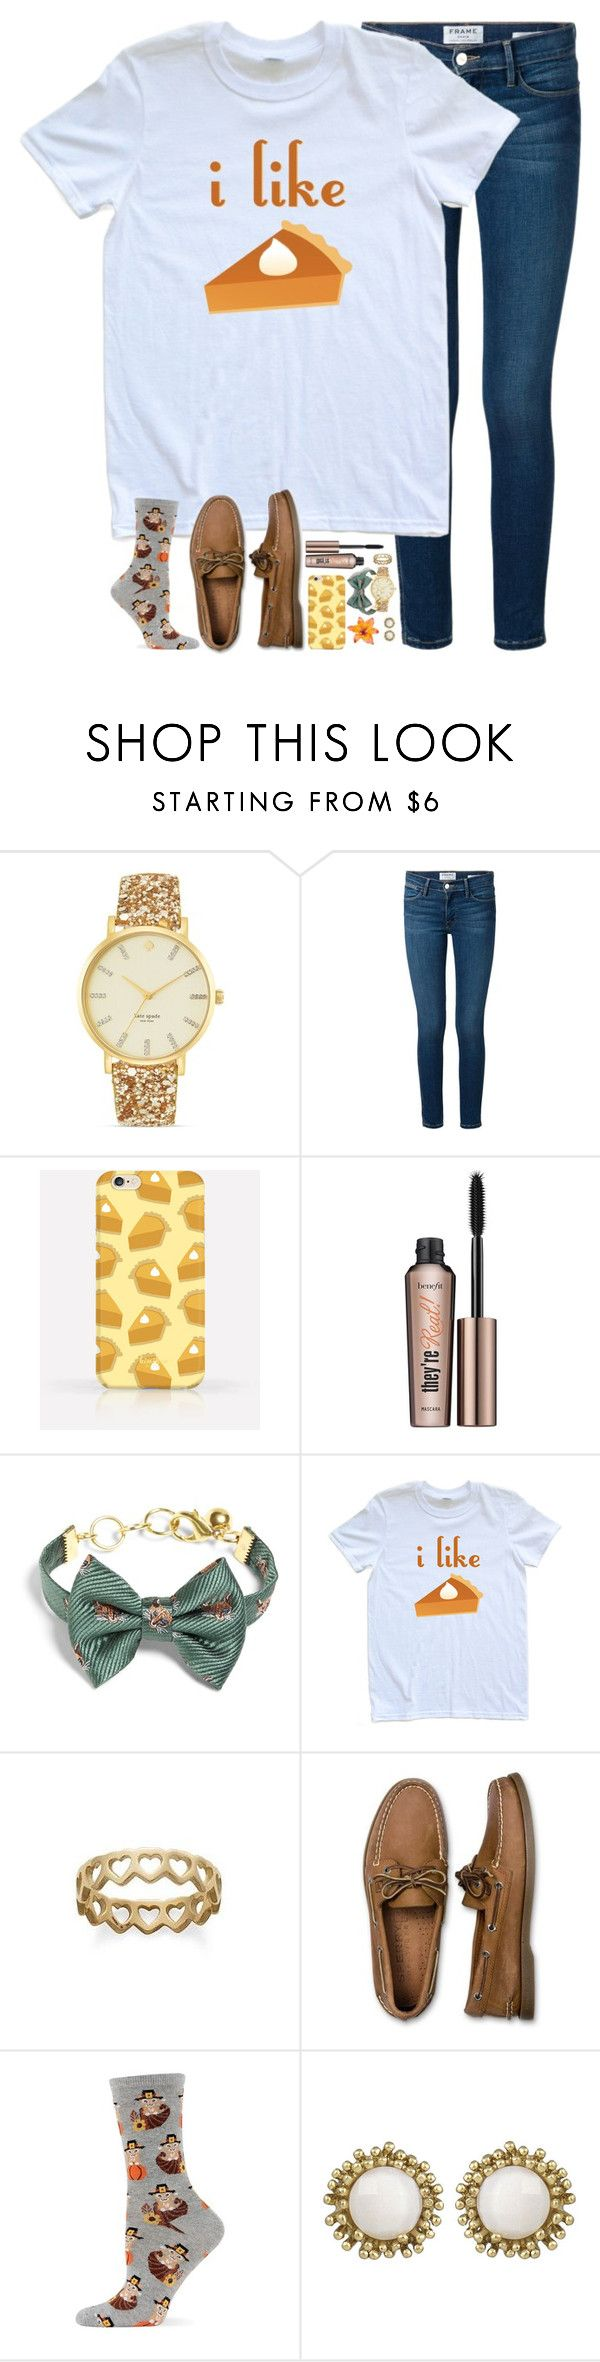 """""""i like *FREAKING OUT BC THERE IS NO PIE EMOJI WHY APPLE WHY*"""" by kthayer01 ❤ liked on Polyvore featuring Kate Spade, Frame Denim, Benefit, Brooks Brothers, Avery, Sperry Top-Sider, HOT SOX and Kendra Scott"""